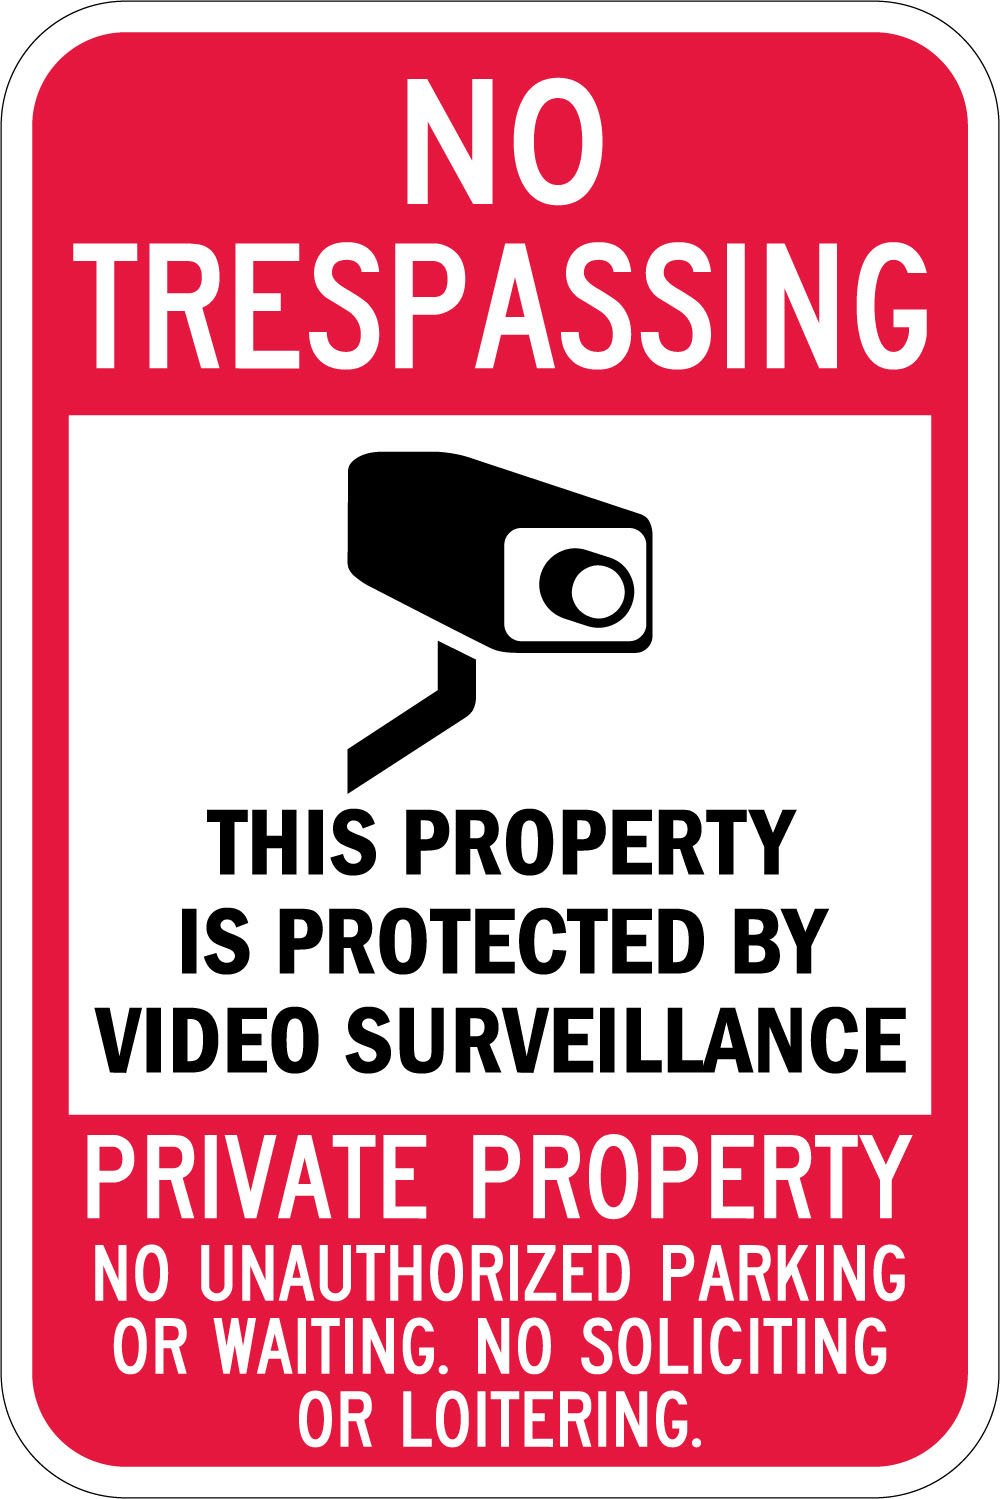 SmartSign 3M Diamond Grade Reflective Aluminum Sign, Legend No Trespassing-Video Surveillance with Graphic, 18' High X 12' Wide, Black/Red on White 18 High X 12 Wide Lyle Signs Inc T1-1084-DG_12x18